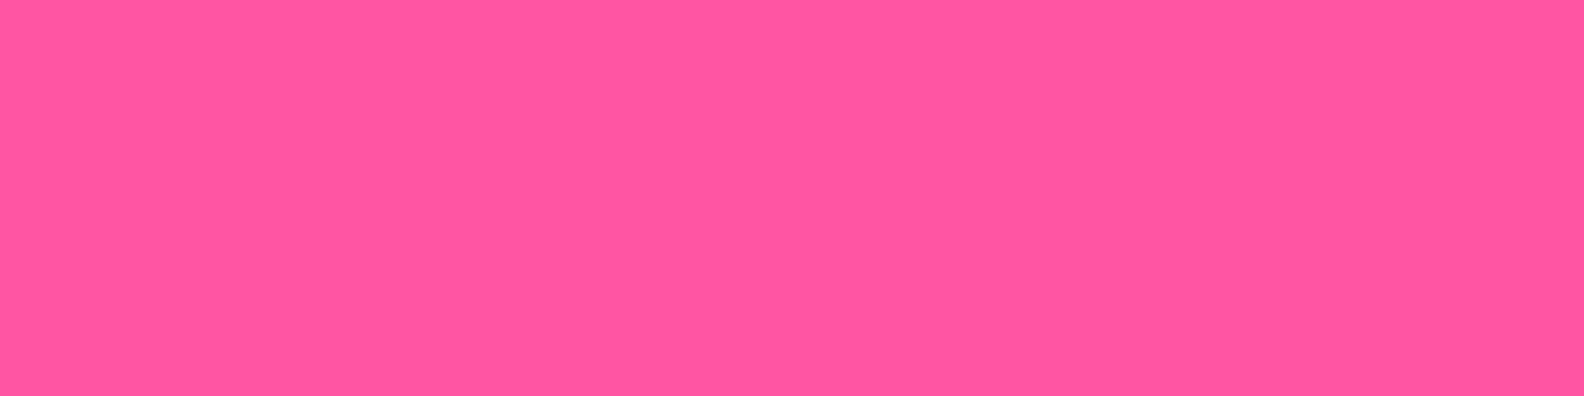 1584x396 Magenta Crayola Solid Color Background